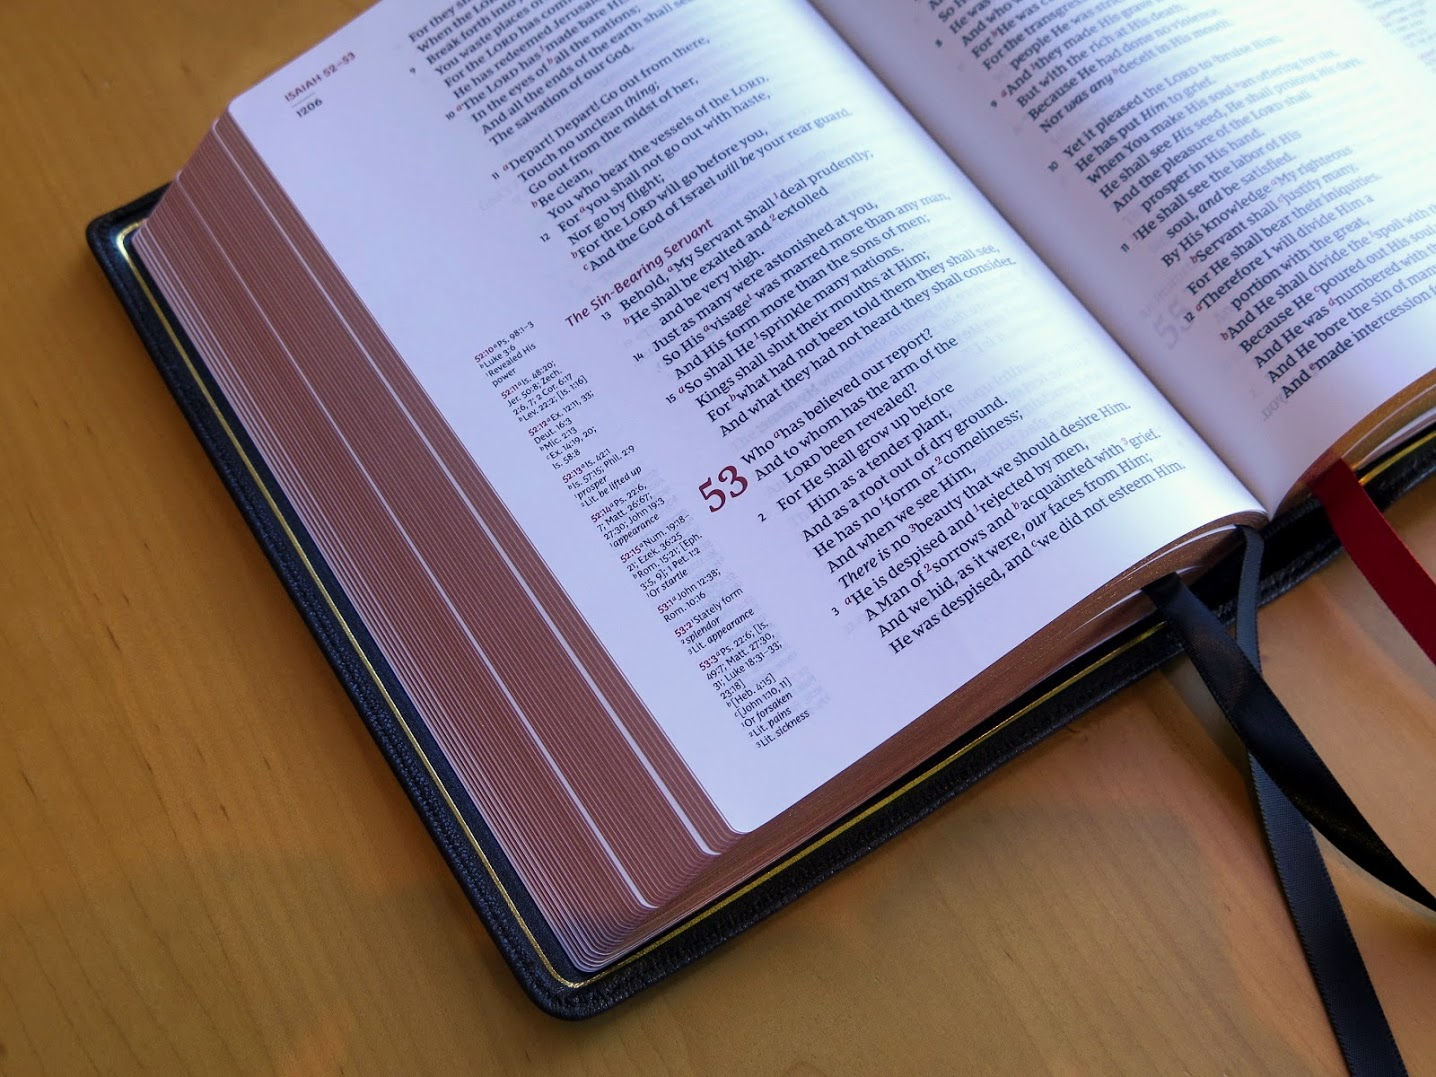 Kjv study bibles with footnotes